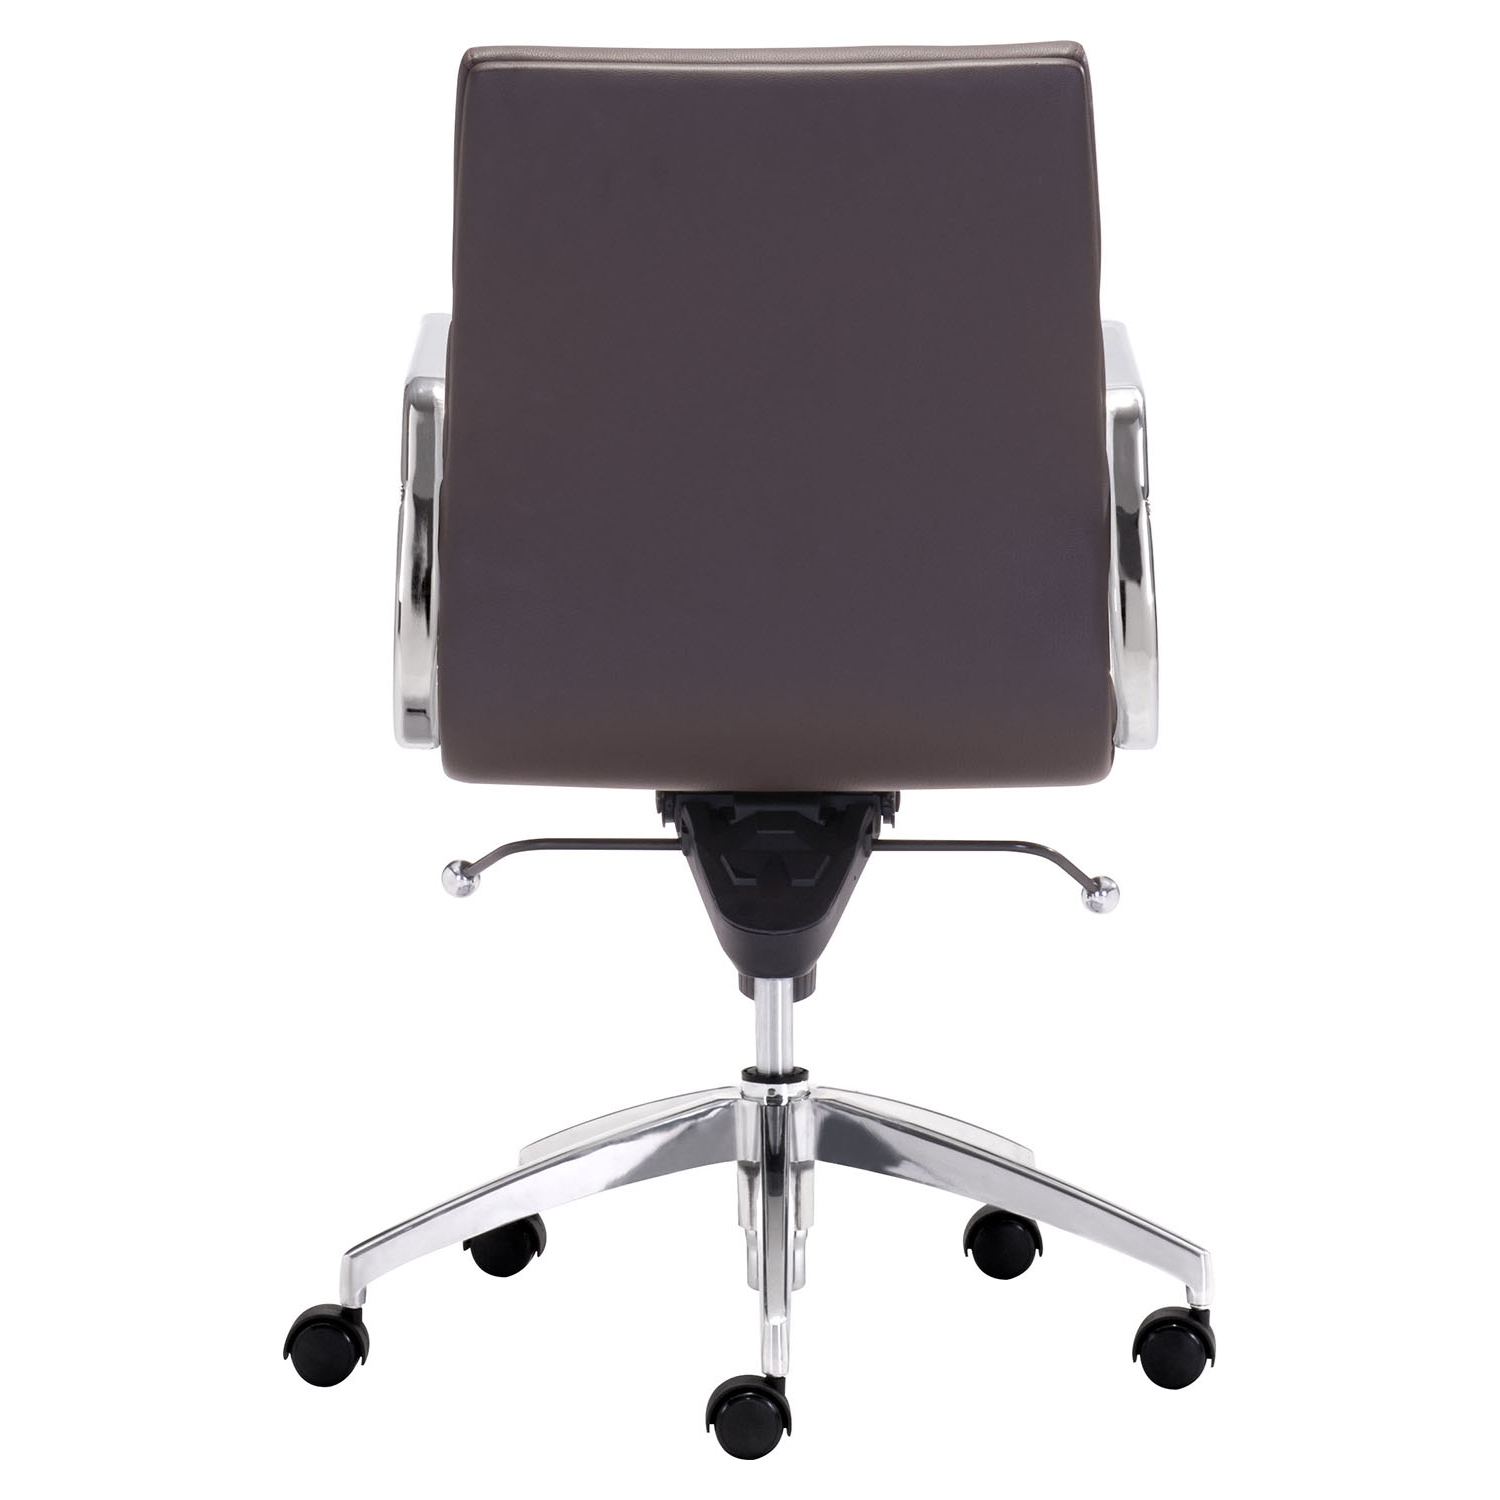 Engineer Low Back Office Chair - Casters, Espresso - ZM-205897